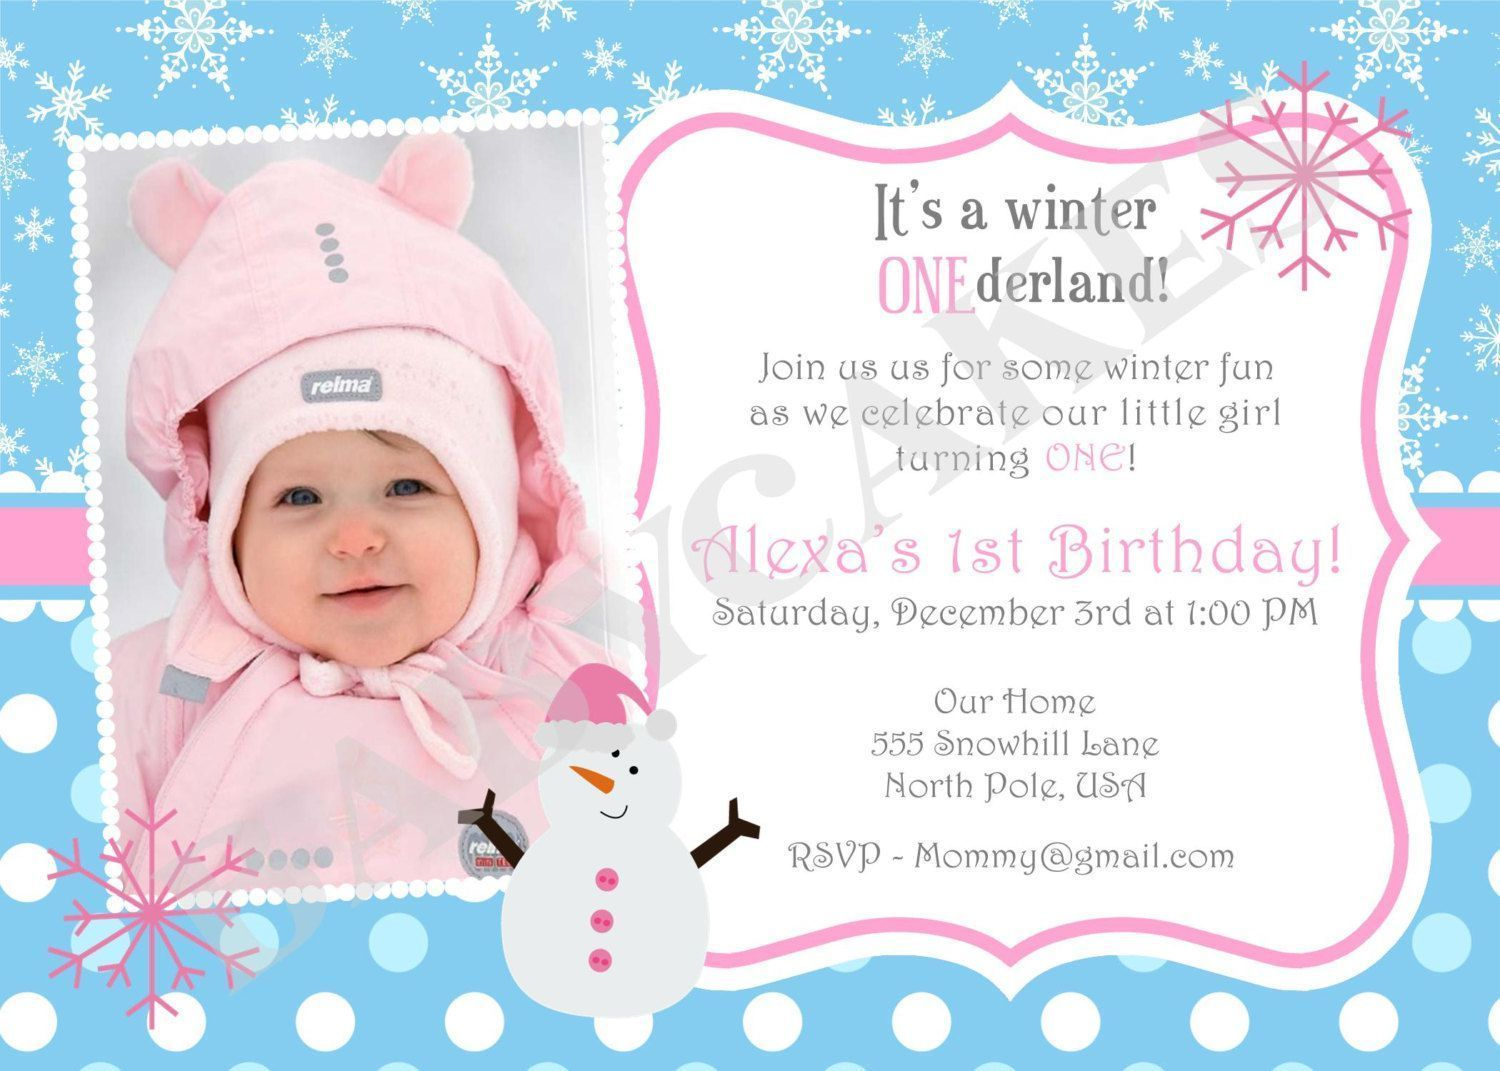 1St Birthday Party Invitation Wording Find a variety of invitation designs for your various events or needs. Receiving an invitation means that you are a ...